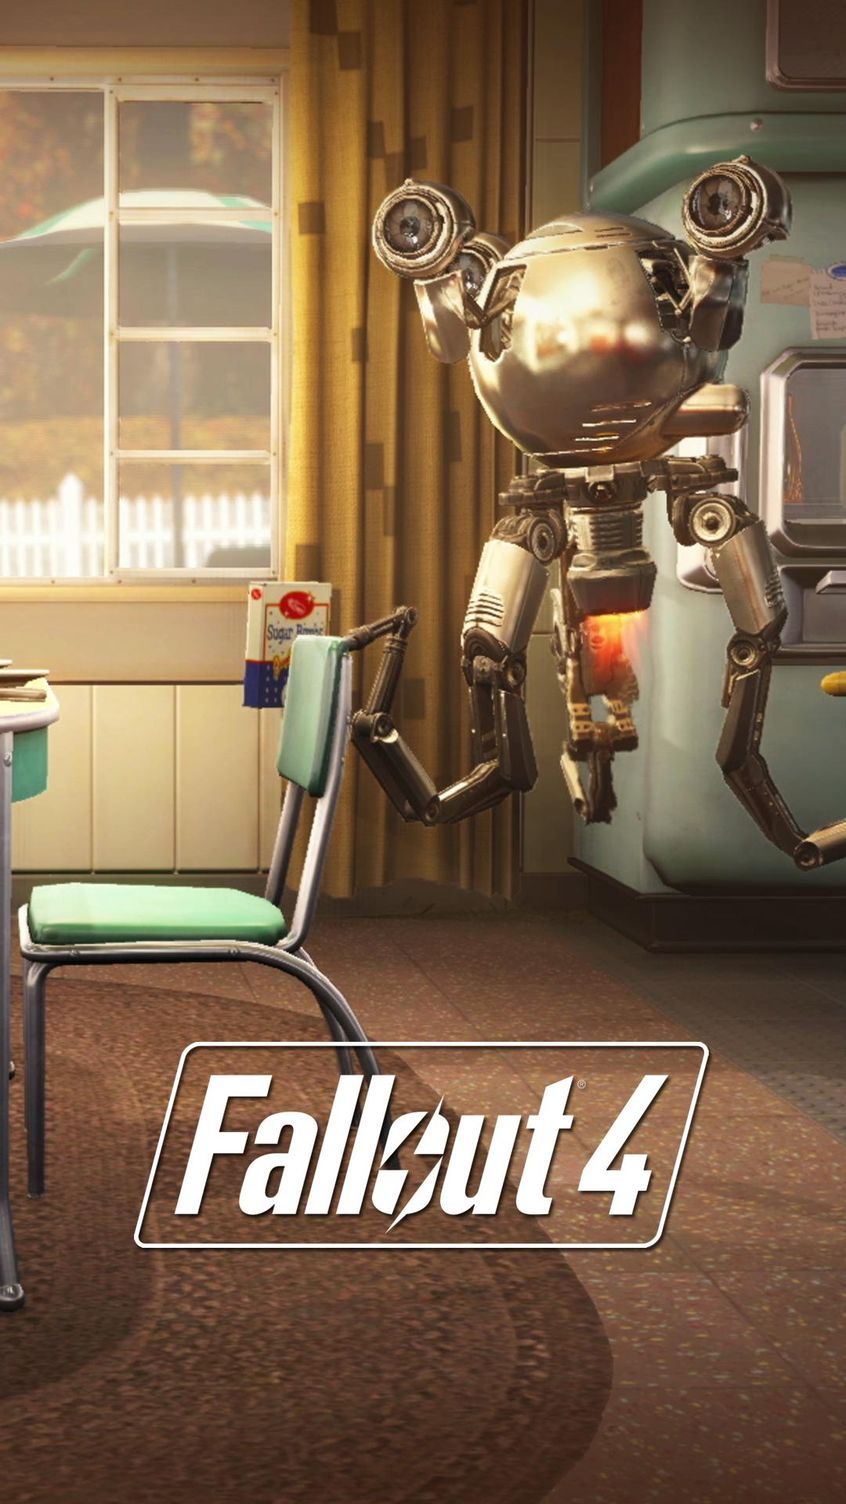 Fallout 4 Phone Wallpapers Top Free Fallout 4 Phone